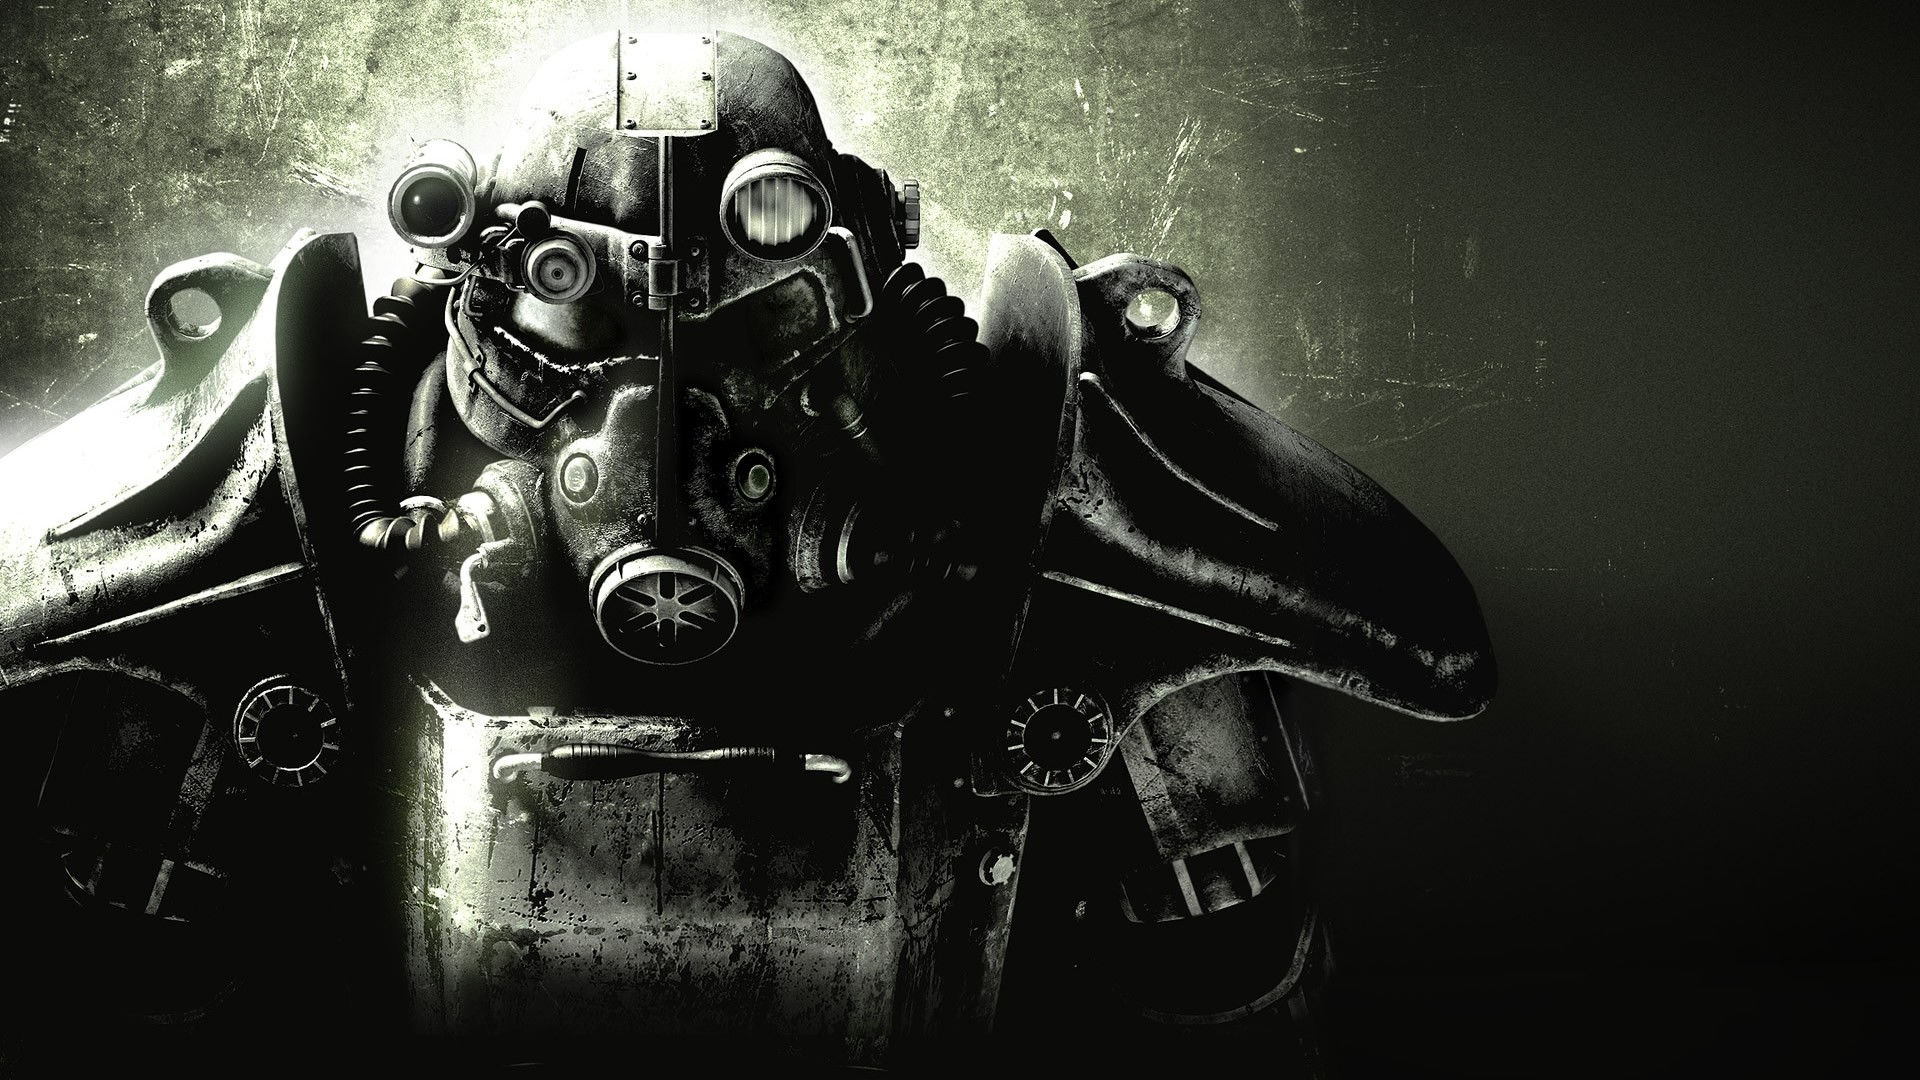 1920x1080 Image Fallout fallout 3 HD Wallpapersjpg War Among the Stars Wiki